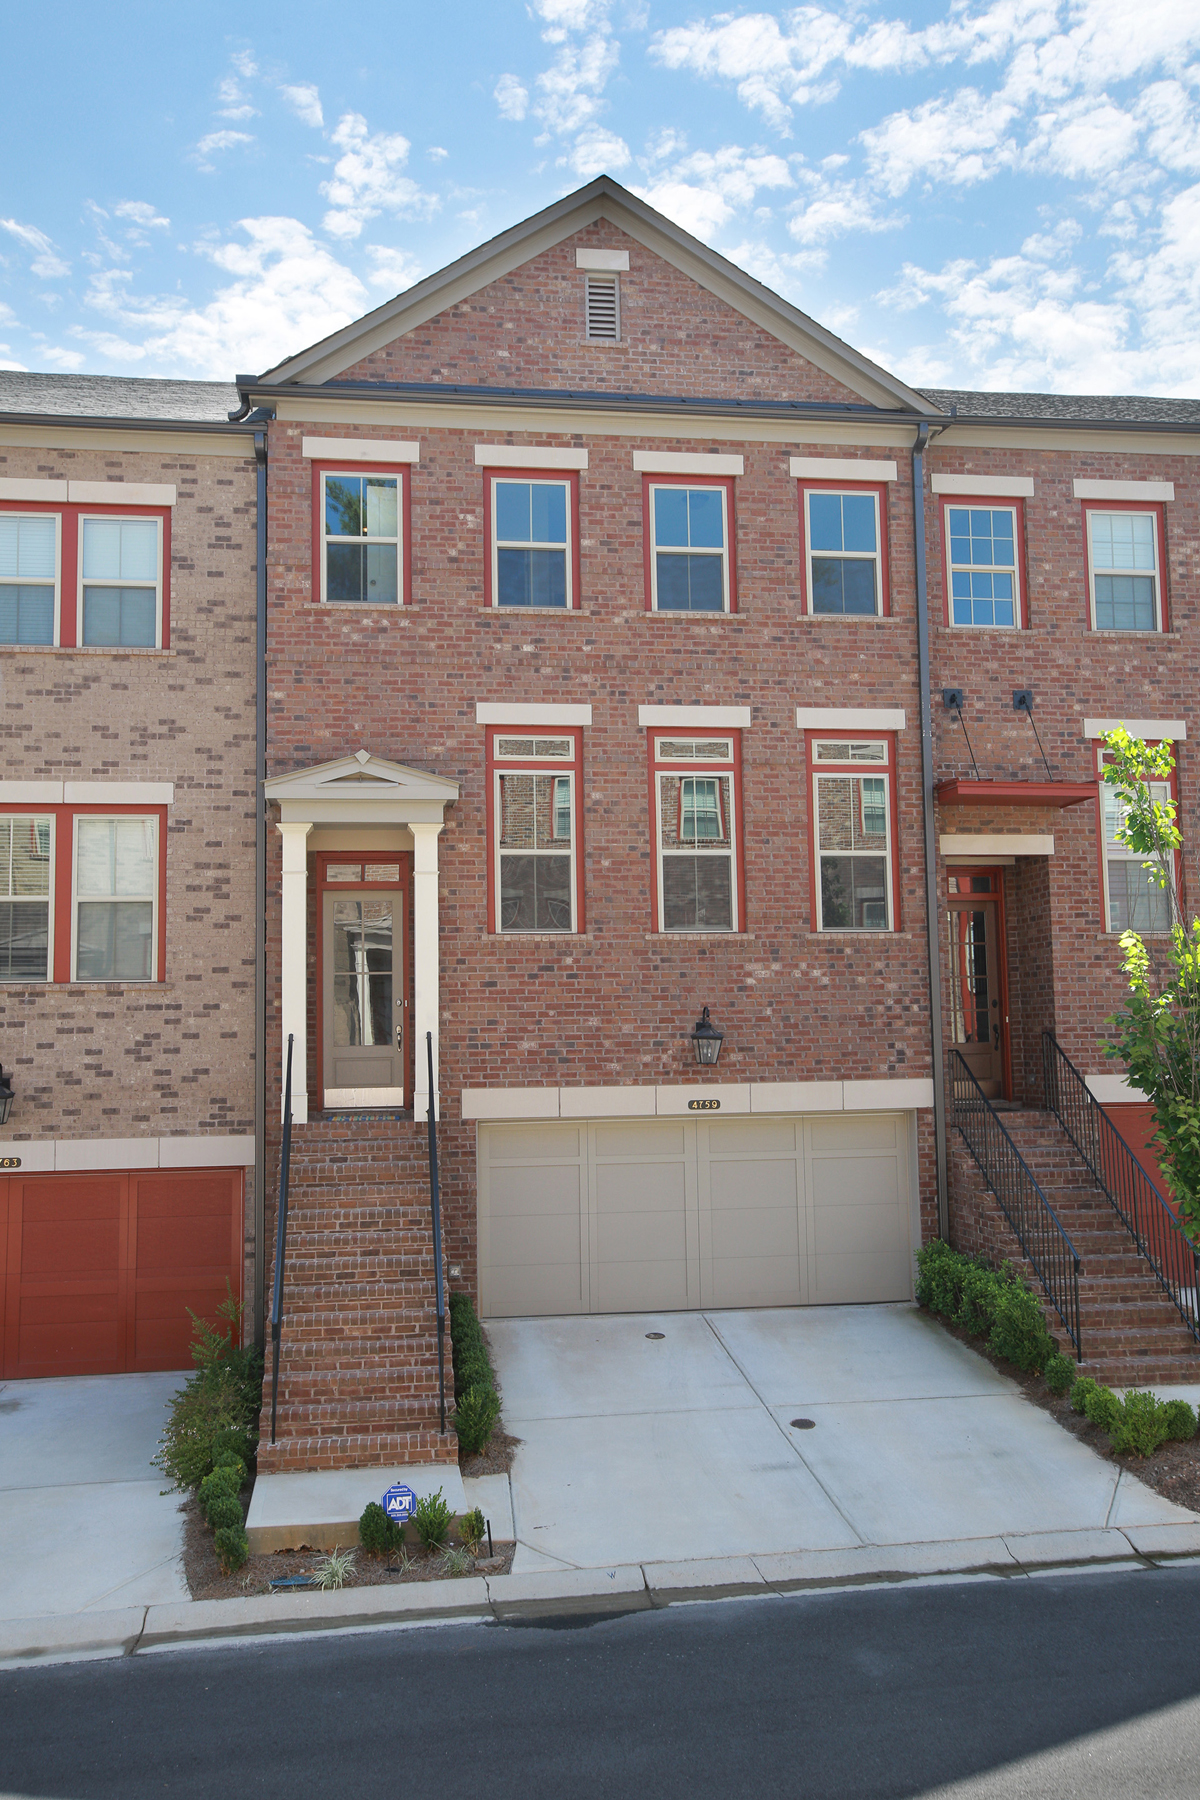 多棟聯建住宅 為 出租 在 Gorgeous Executive Townhome In Sought After DunwoodyPerimeter Location 4759 Laurel Walk Dunwoody, 喬治亞州 30338 美國